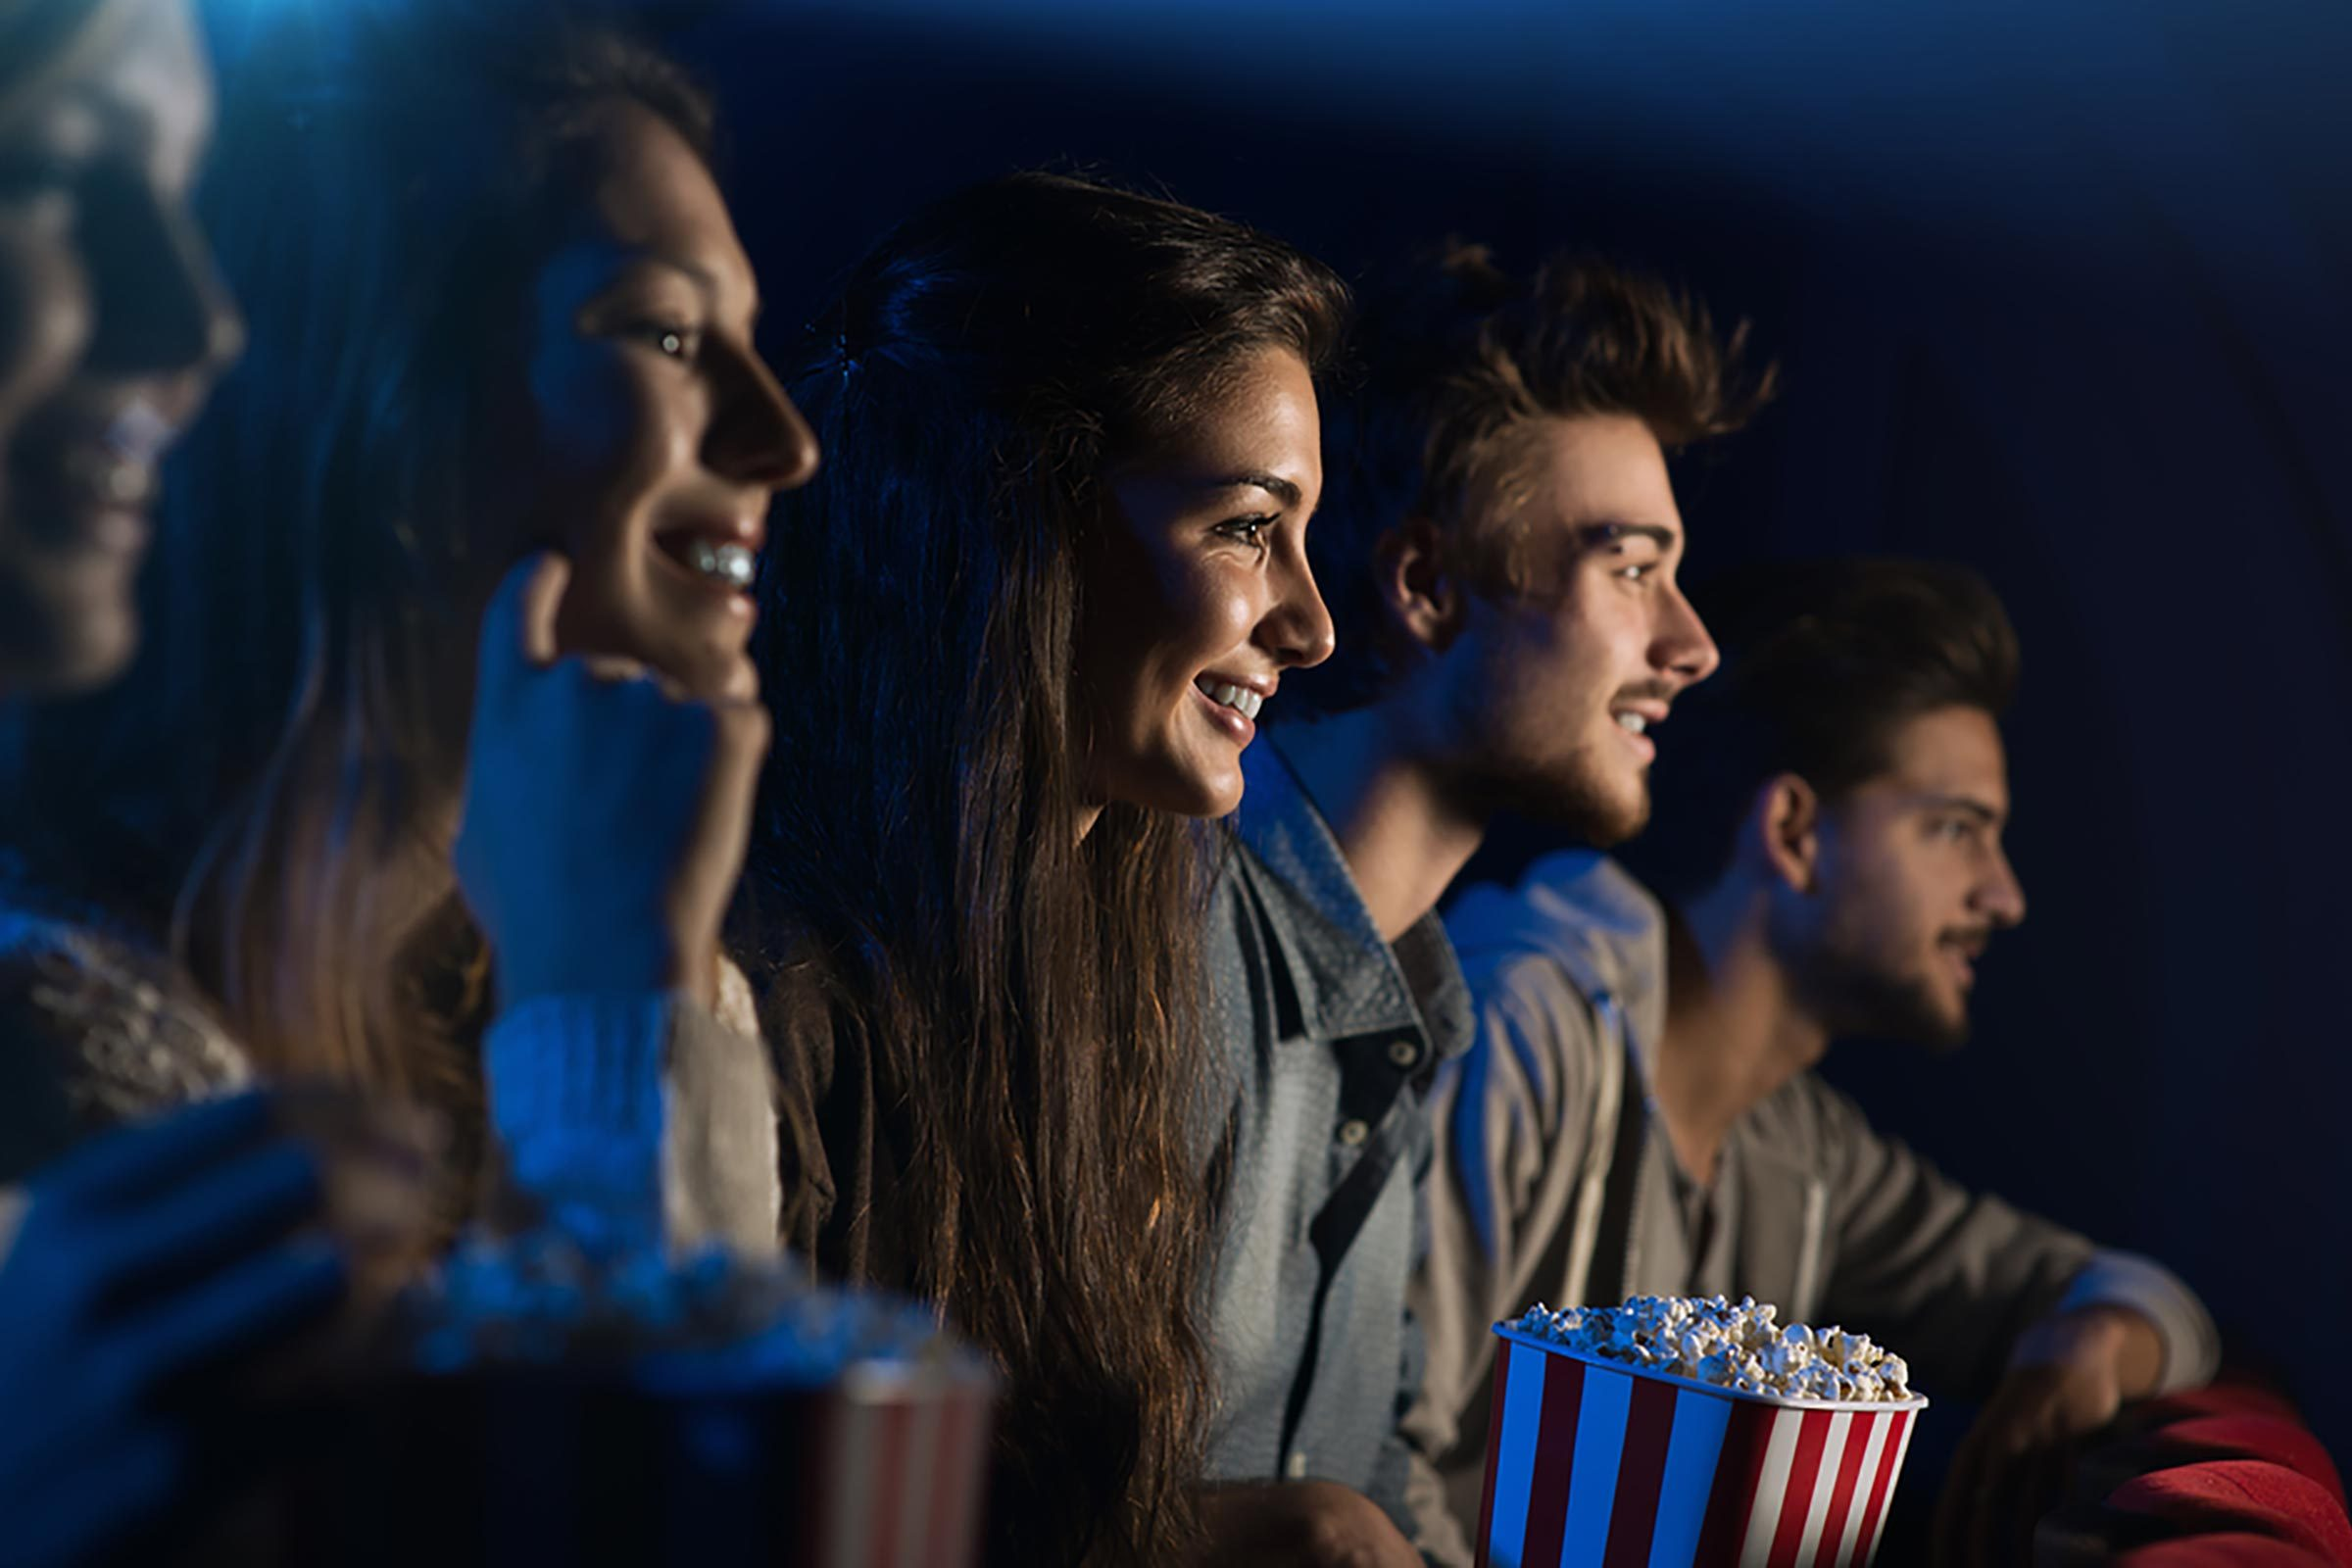 people viewing a theater performance